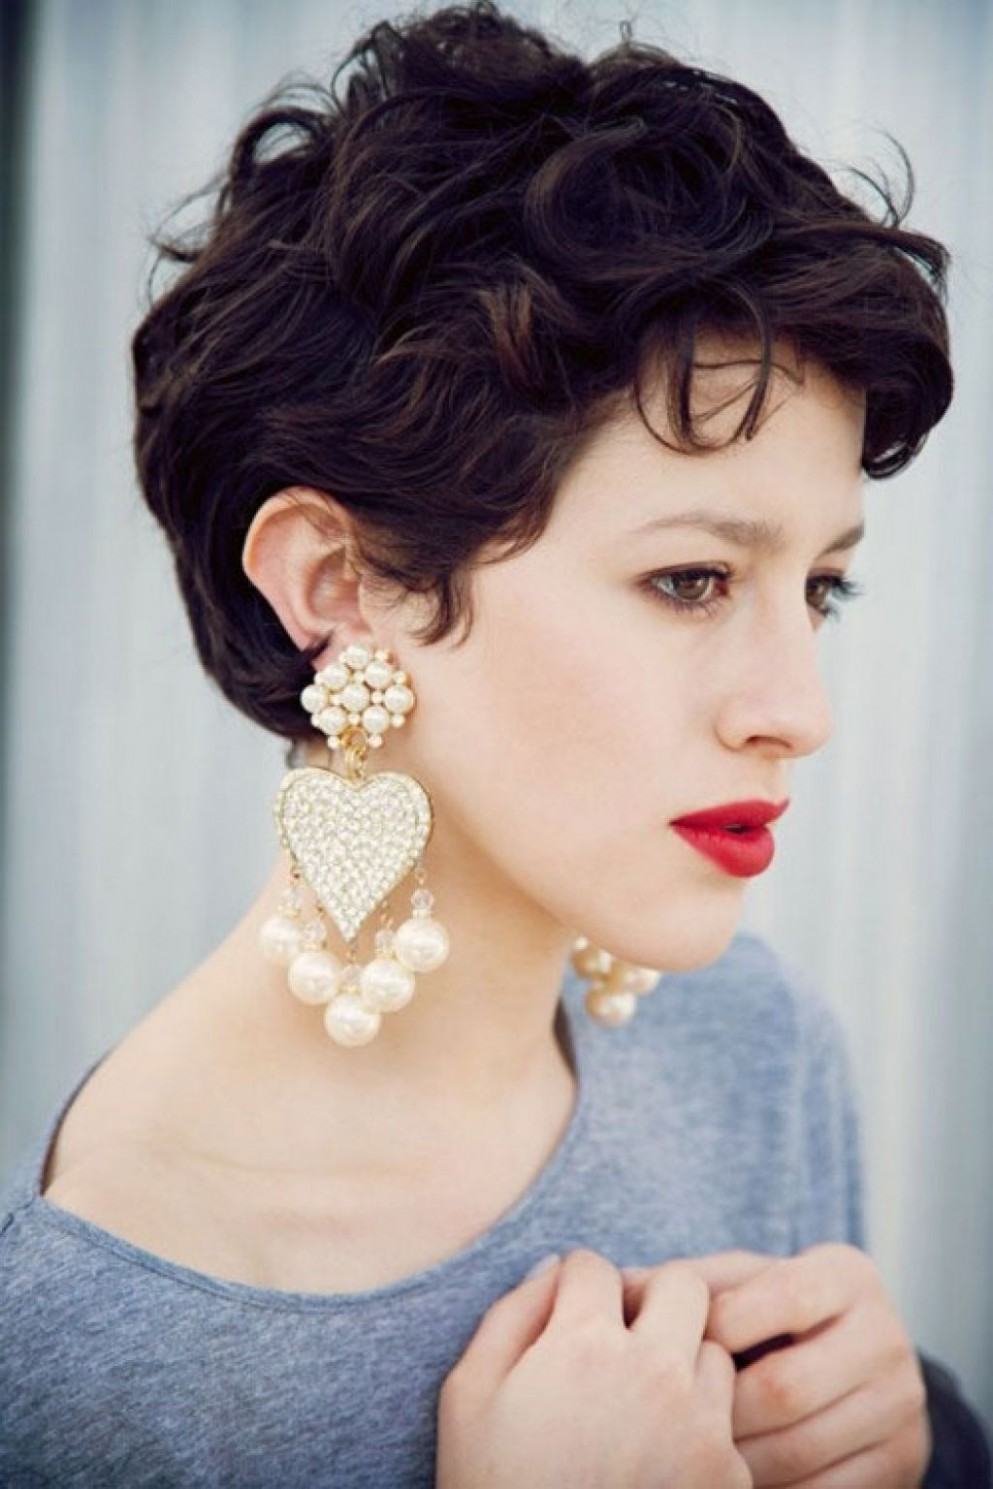 Short Pixie Haircuts For Thick Hair Curly Pixie Hairstyles Pixie Cut For Thick Wavy Hair